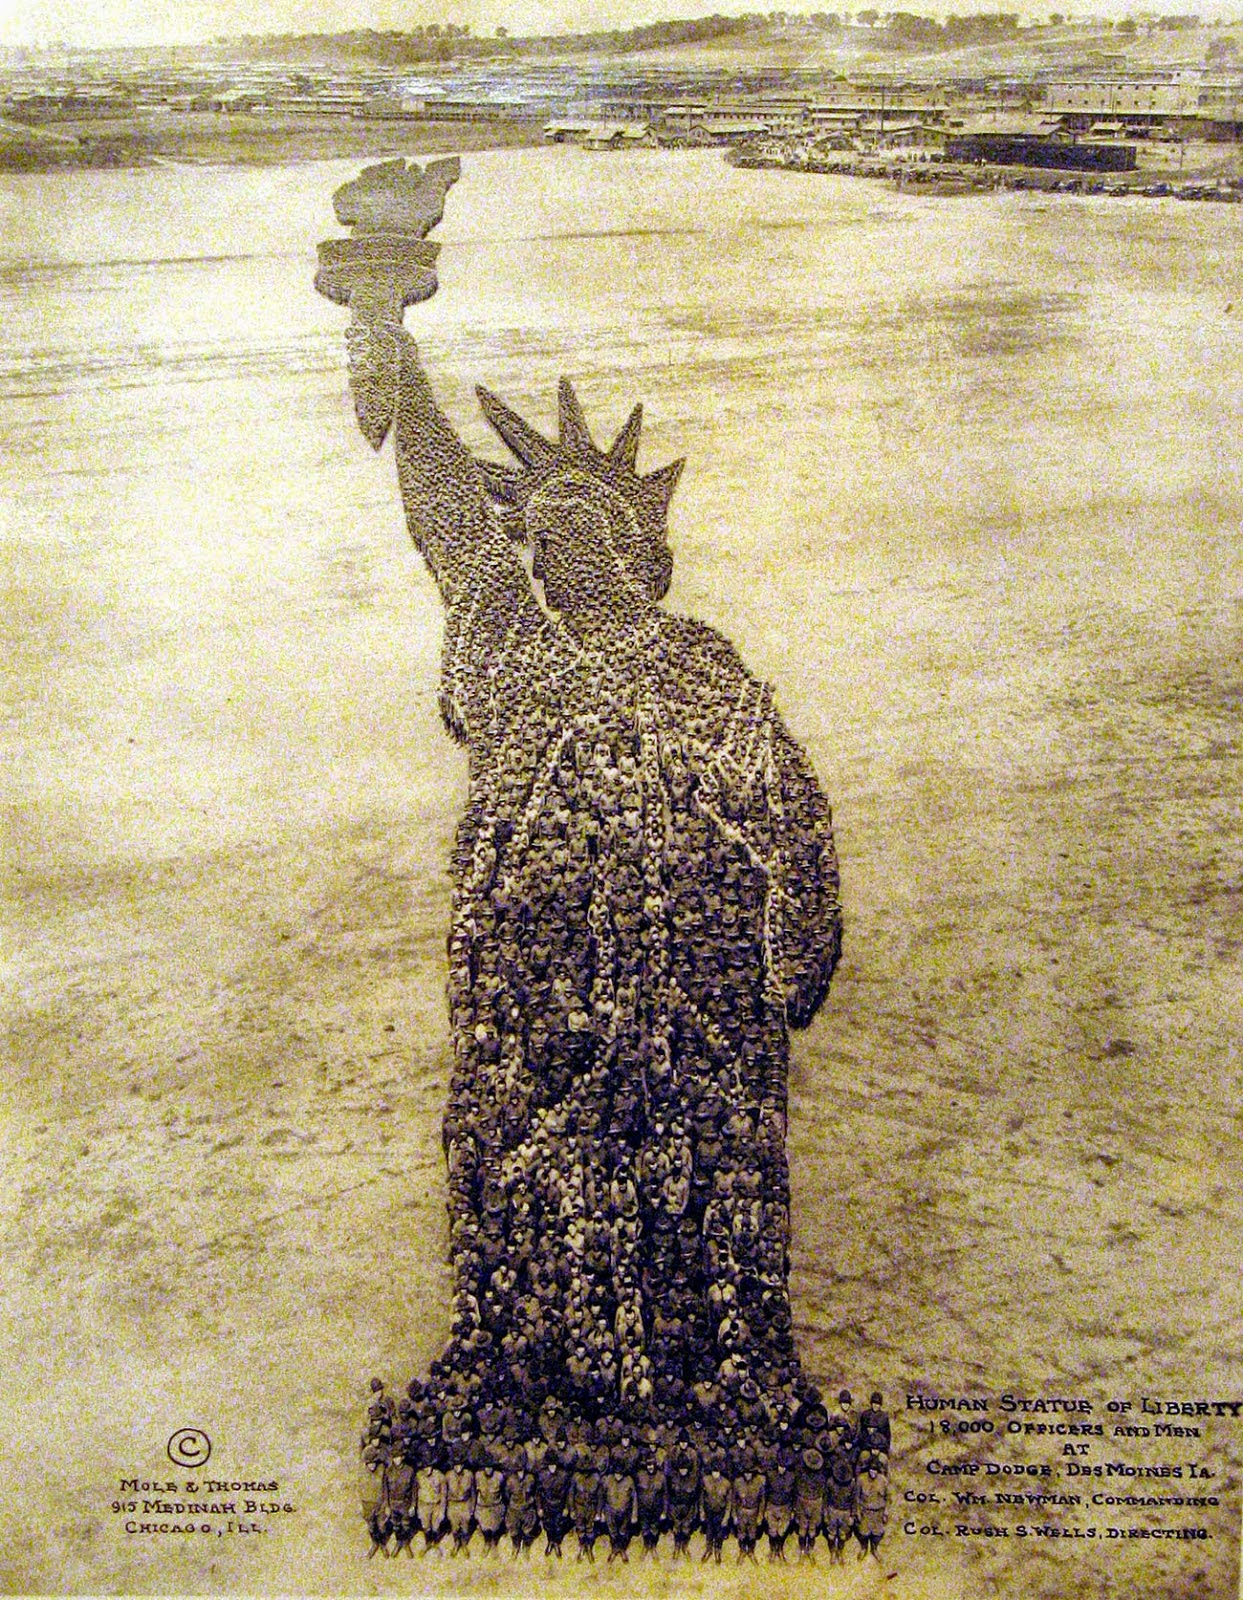 Pictures Formed by Thousands of US Soldiers during World War I (1).jpg